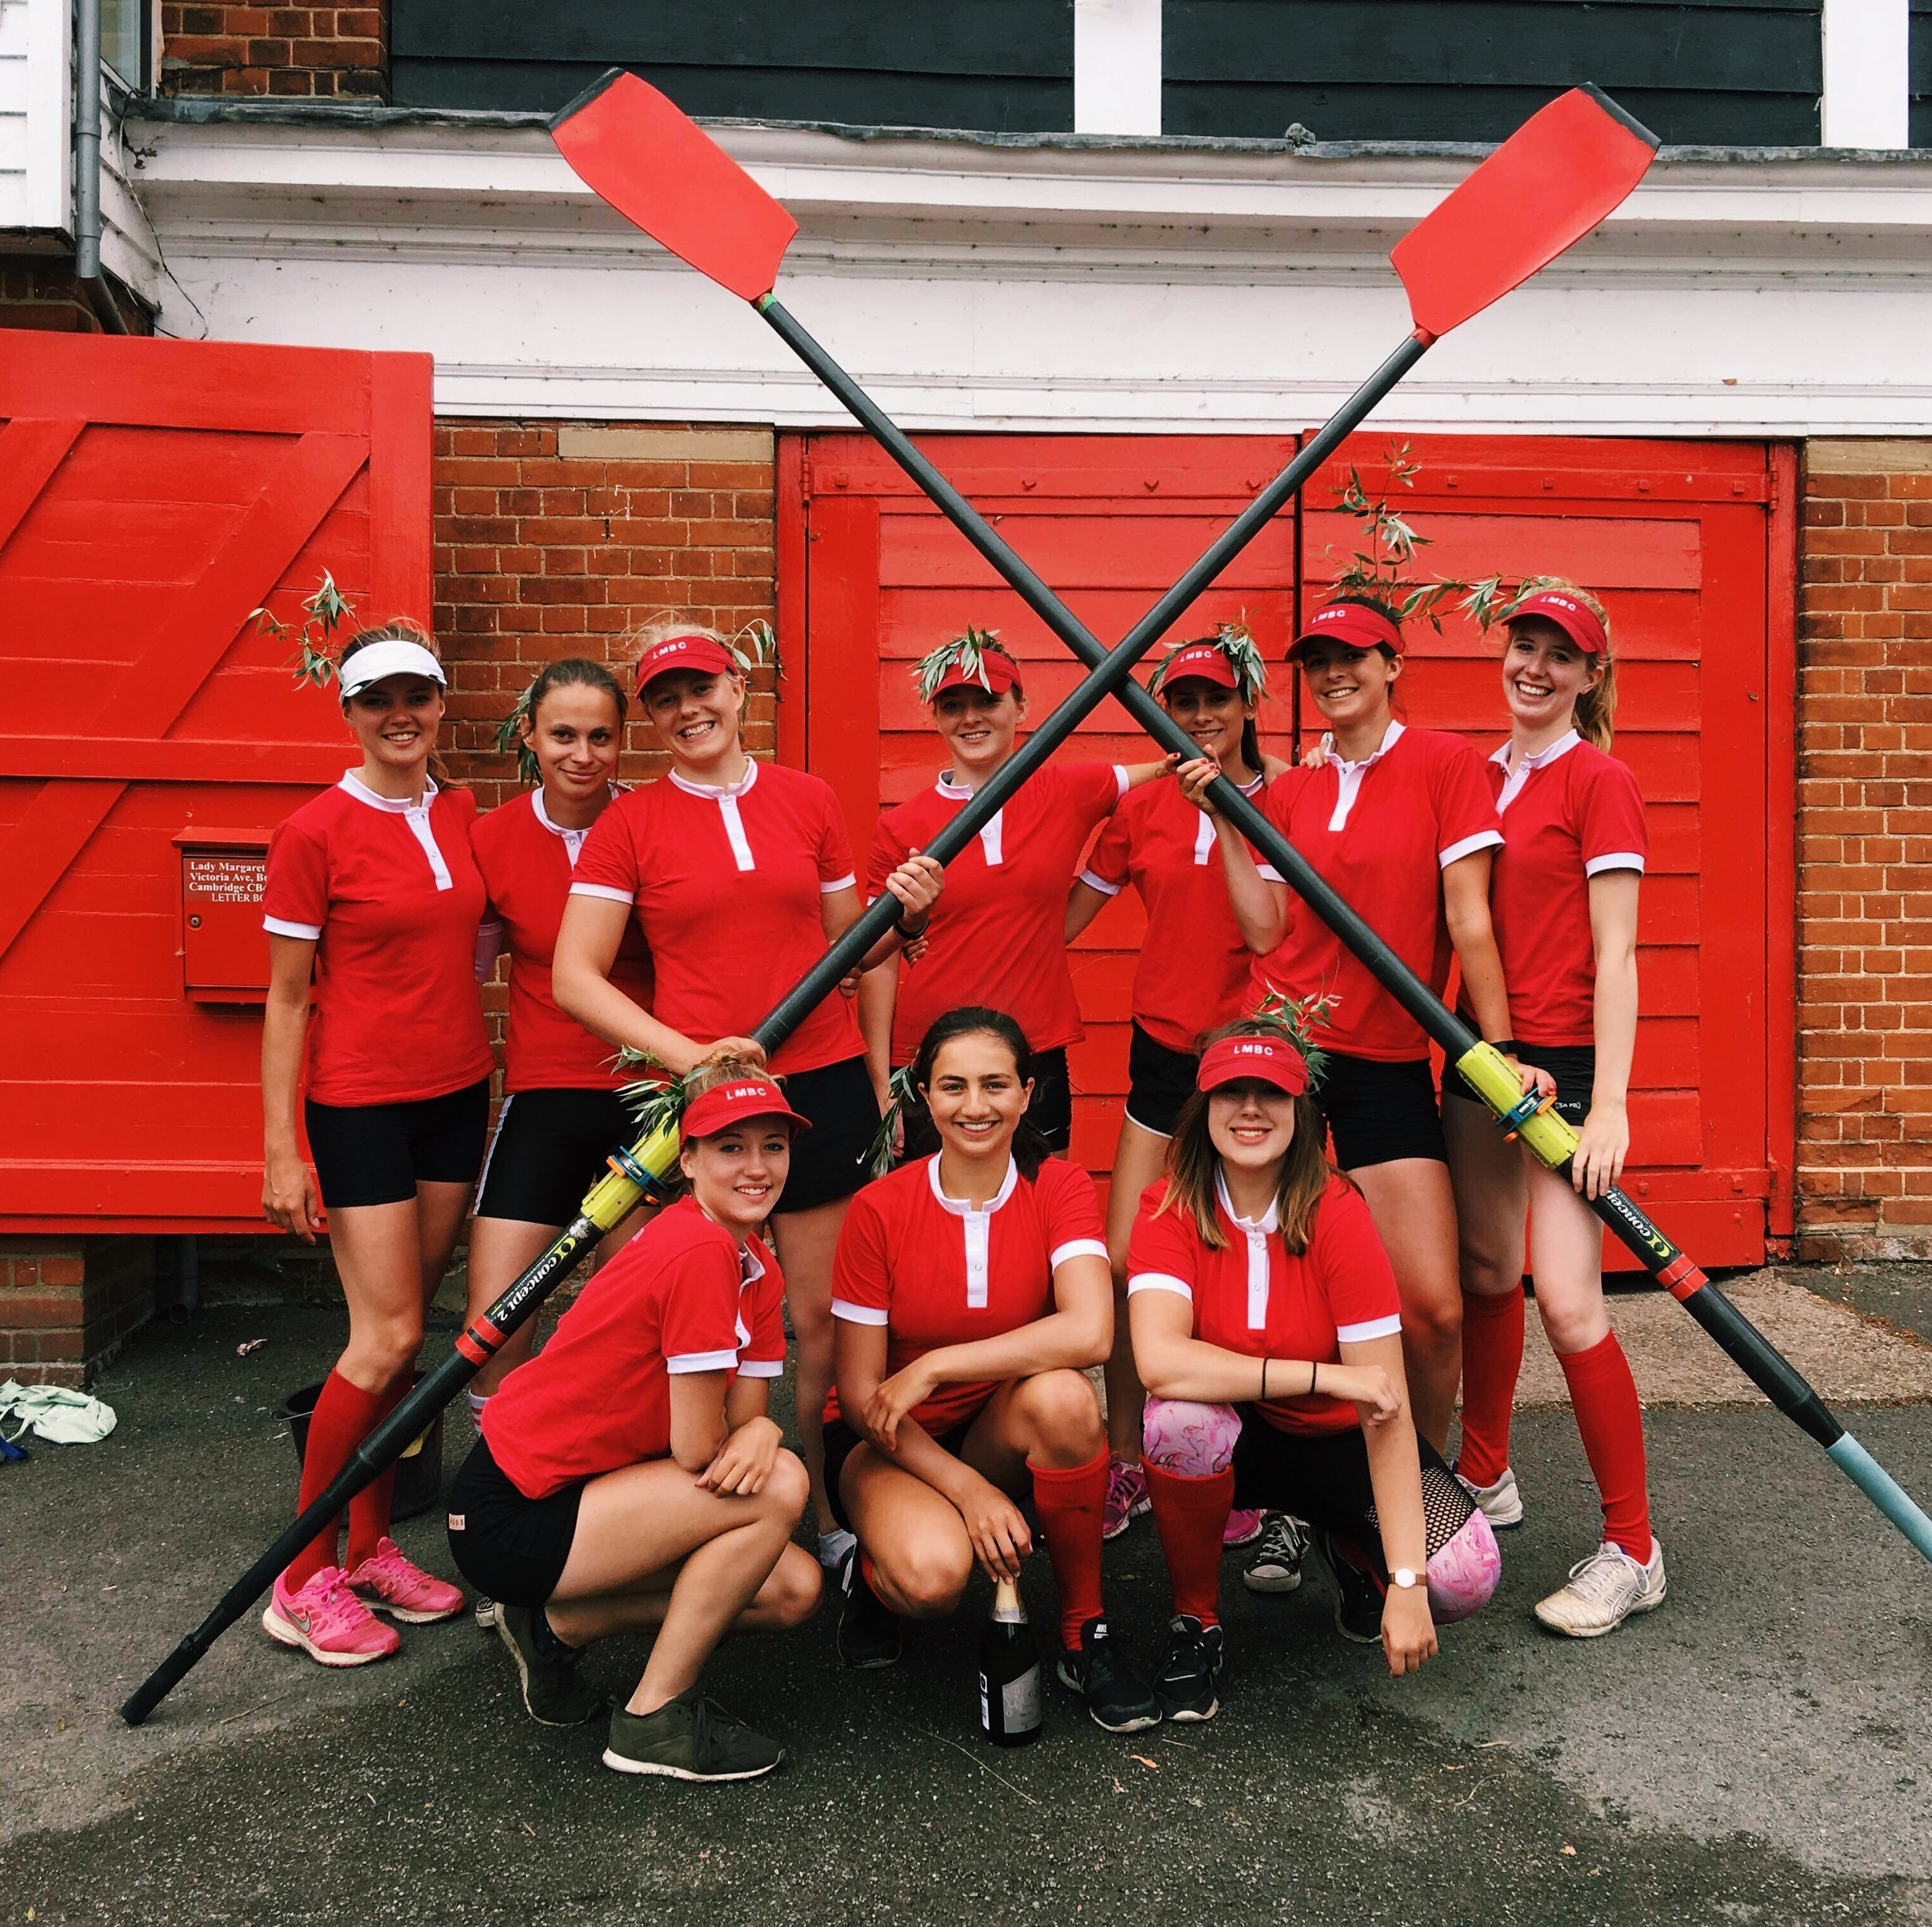 The W2 Mays 2018 Crew with 7 girls who learnt to row at LMBC, 4 of which noviced in Michaelmas 2017.